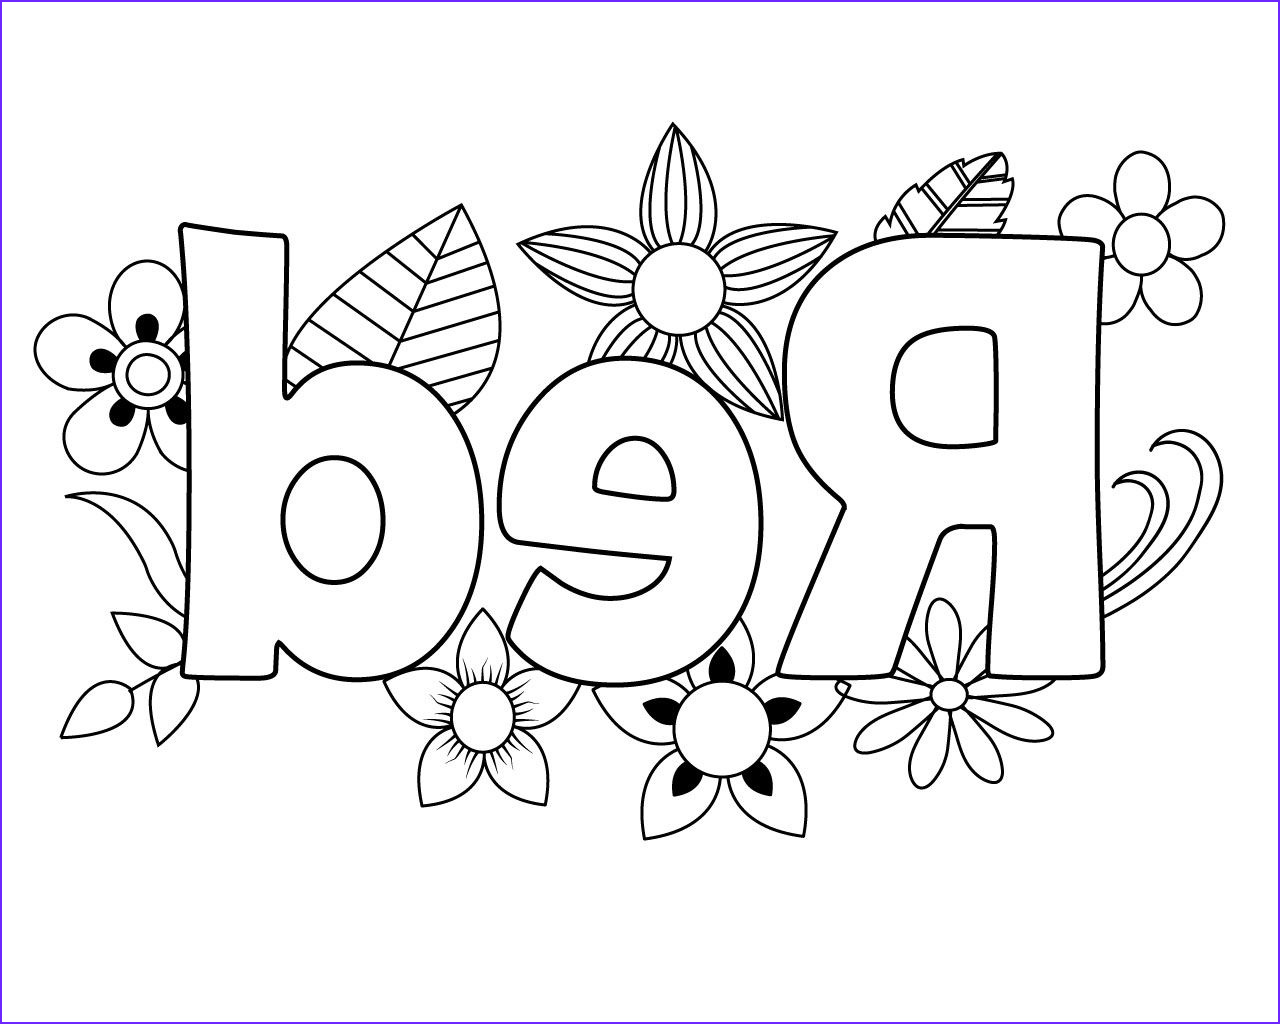 Red Coloring Sheet Inspirational Image Printable Red Coloring Pages for Your Little Es